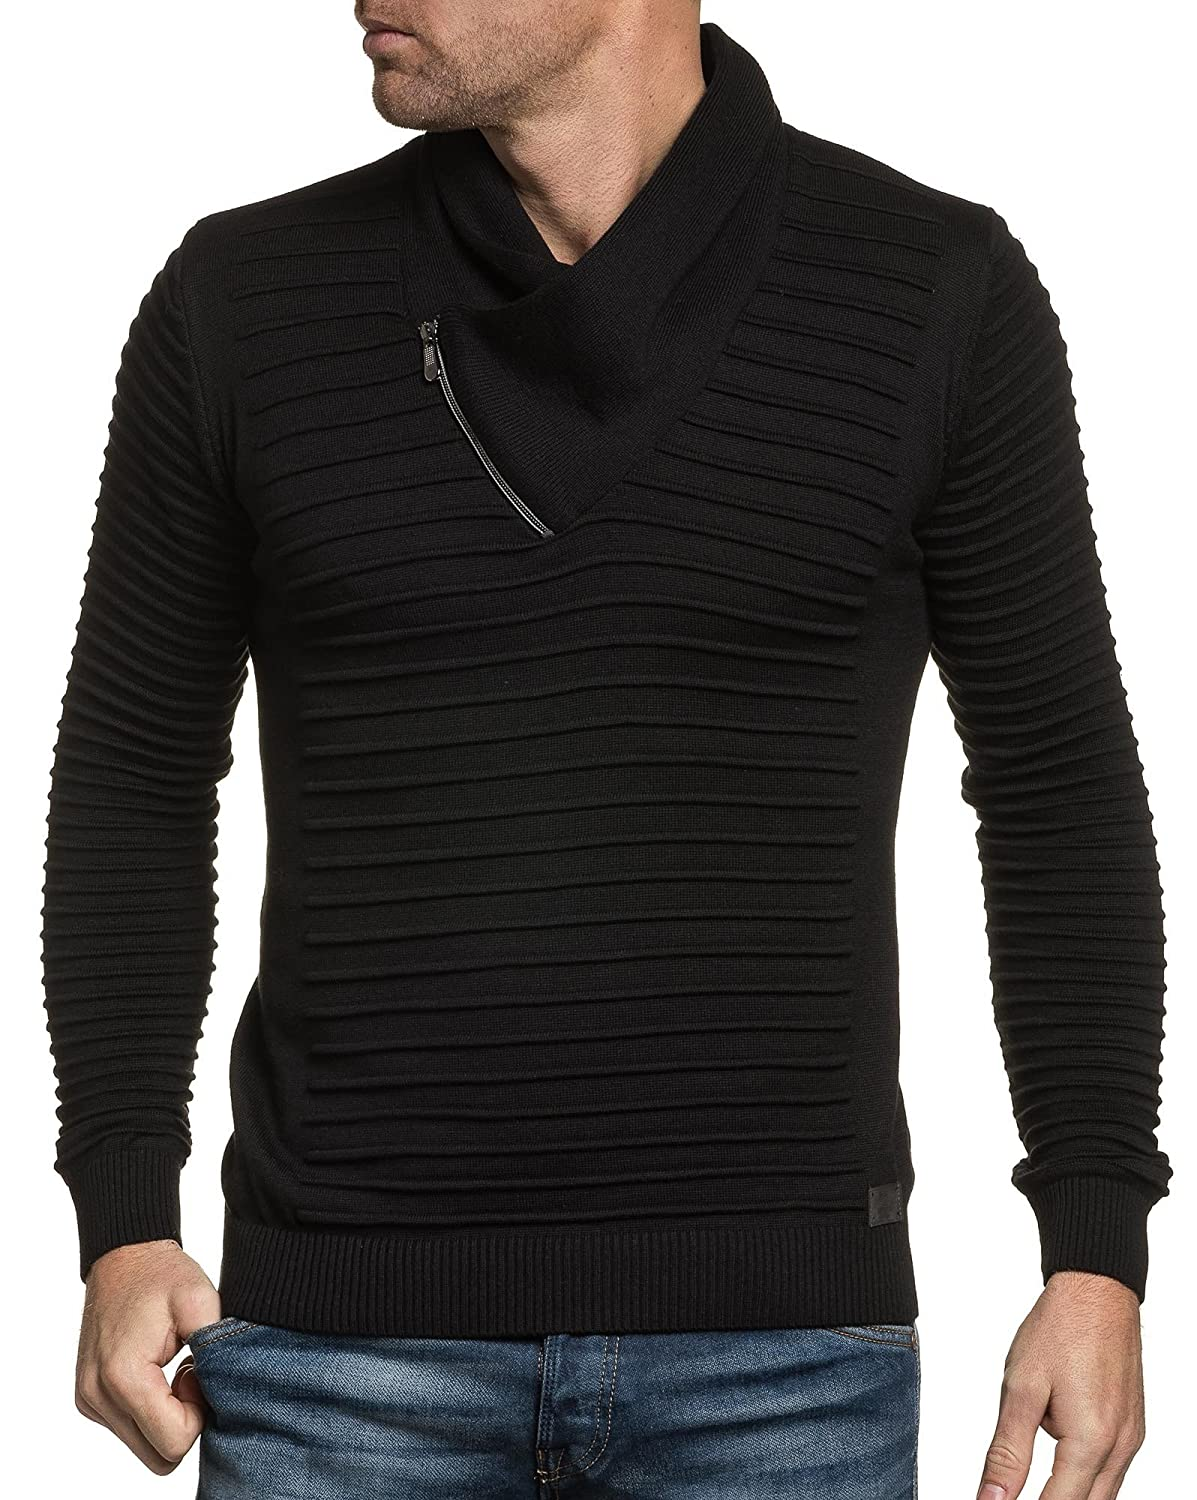 BLZ jeans - Pullover black man zipped collar